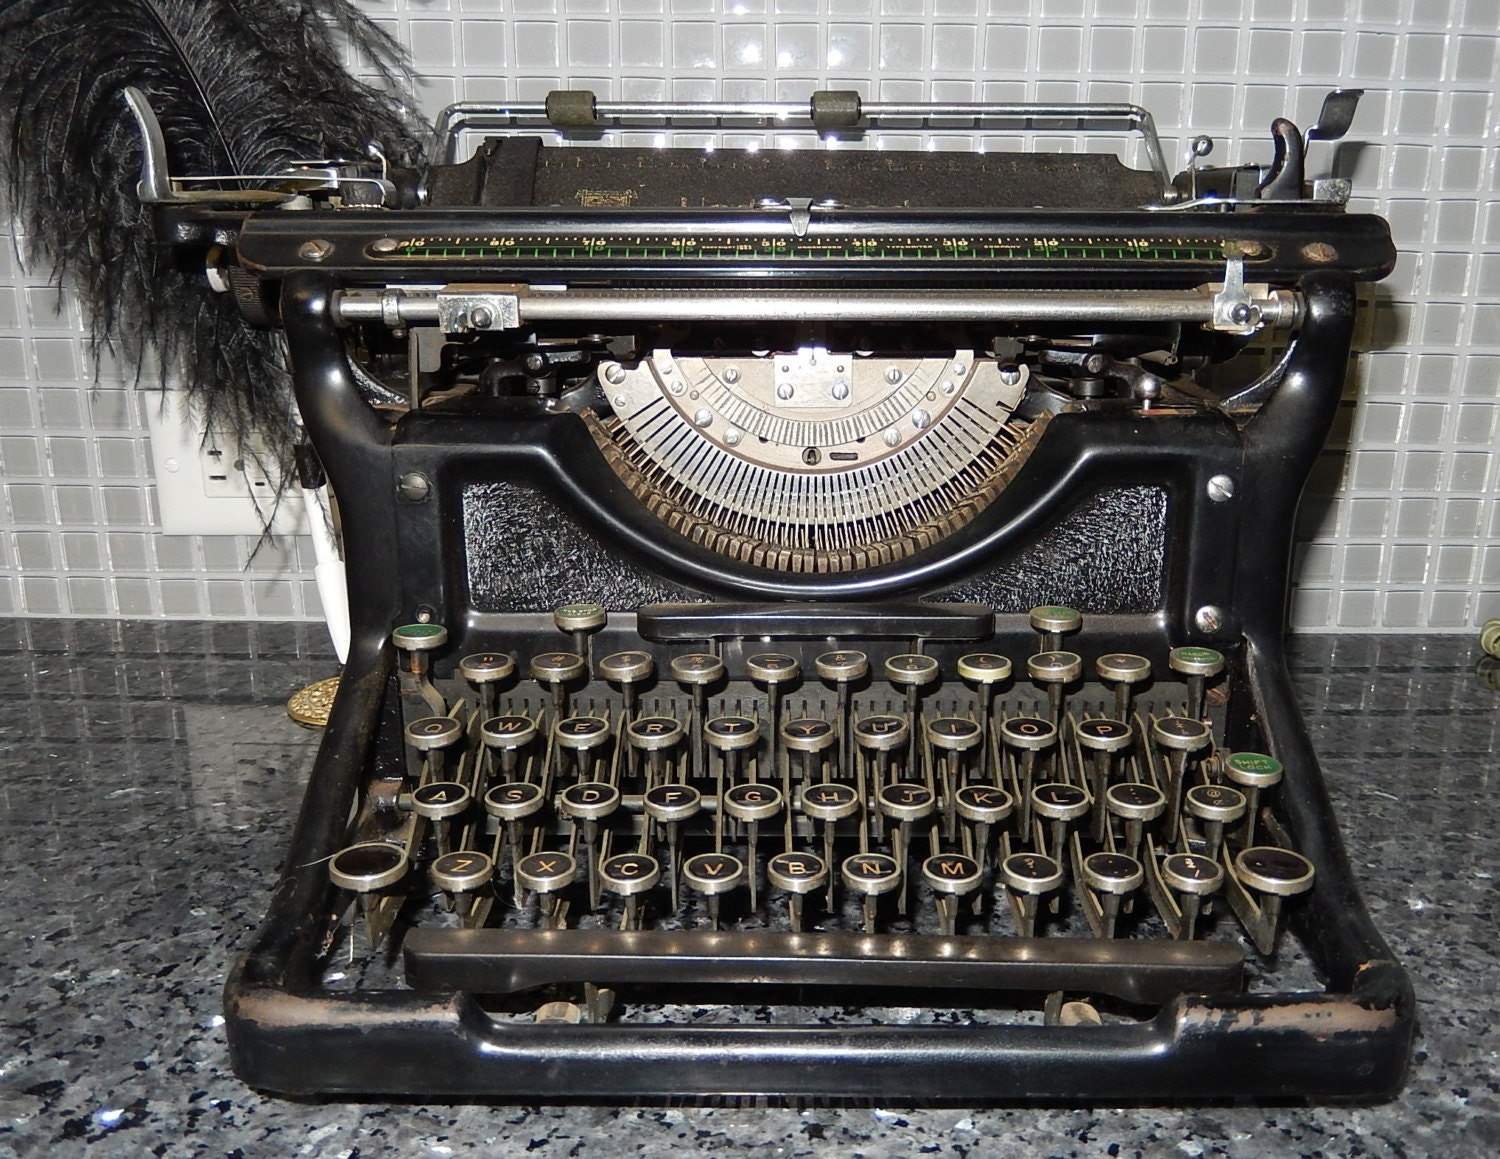 Antique Typewriter Images, Stock Photos Vectors Shutterstock Pictures of antique typewriters